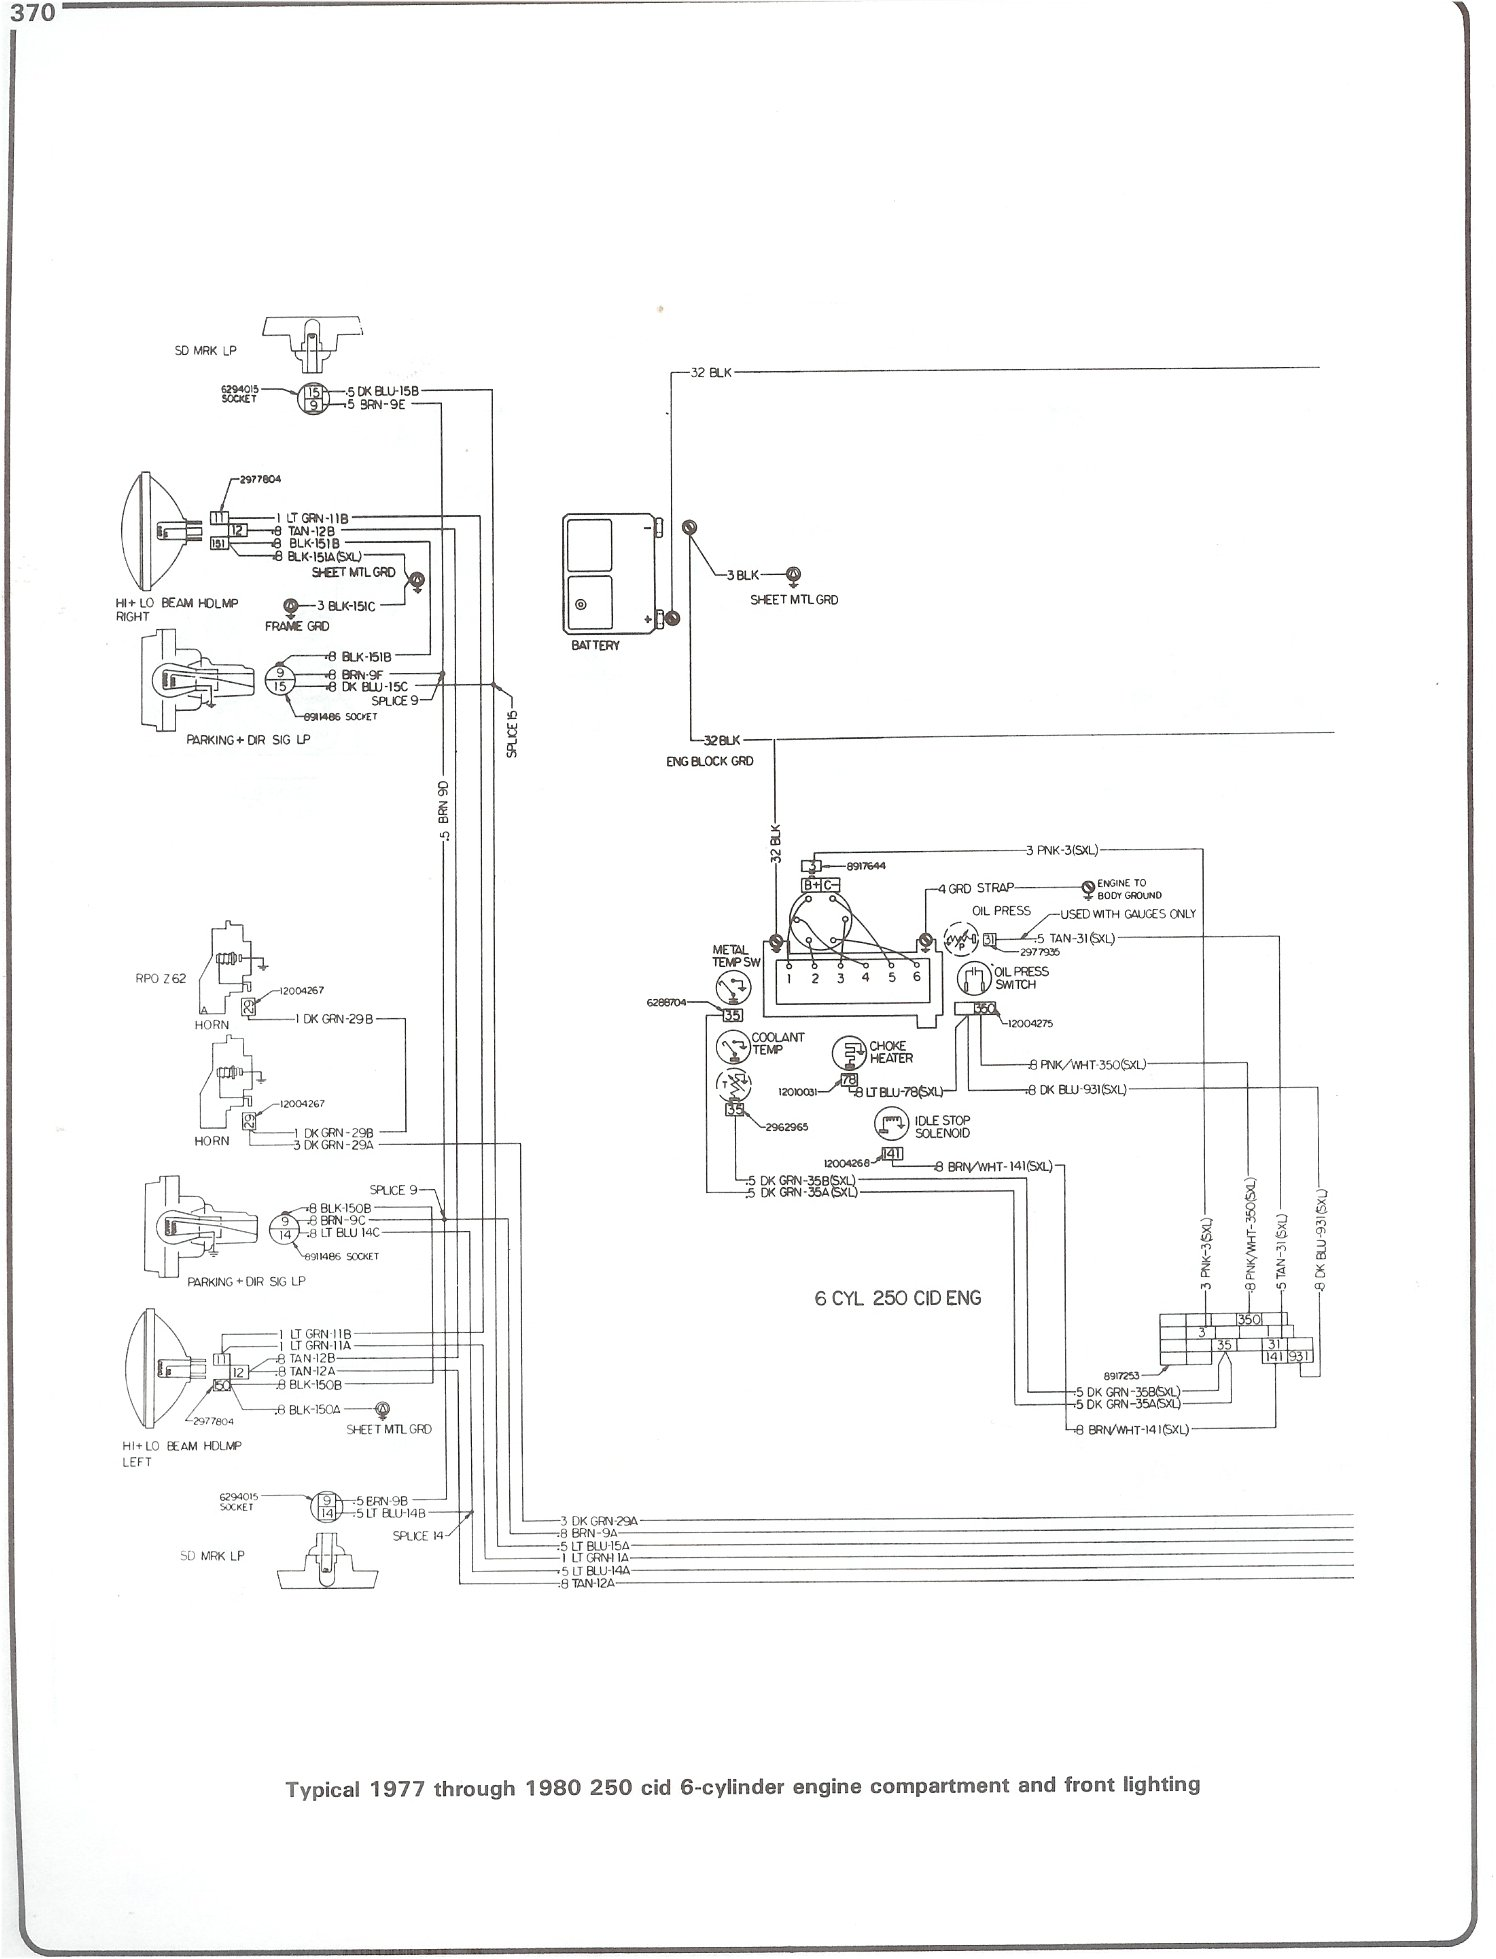 D0318 84 C10 Wiring Diagram | Digital Resources on 84 corvette wiring diagram, 84 k2500 wiring diagram, 84 camaro wiring diagram, 84 caprice wiring diagram, 84 k5 blazer wiring diagram, 84 cavalier wiring diagram, 84 k20 wiring diagram,